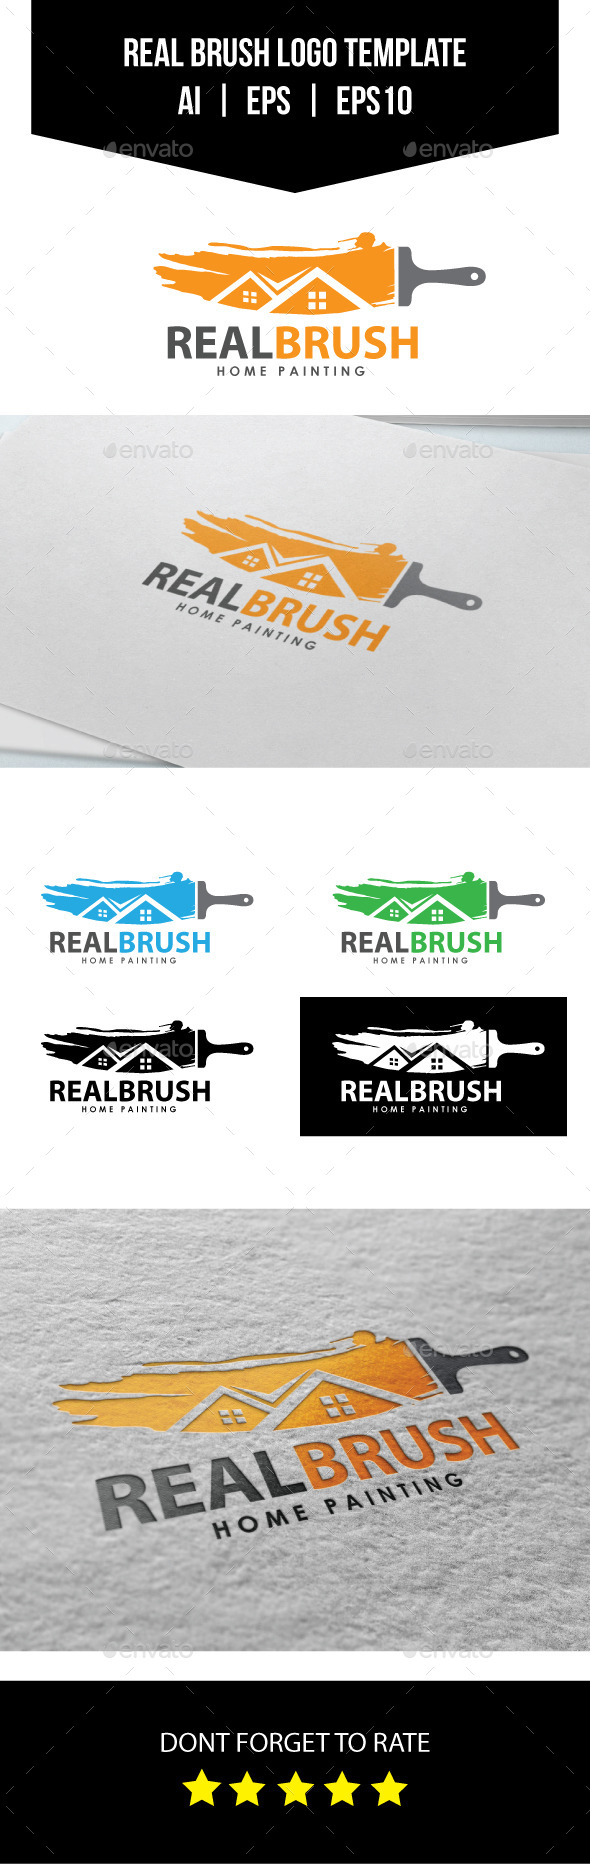 GraphicRiver Real Brush Logo Template 10730469